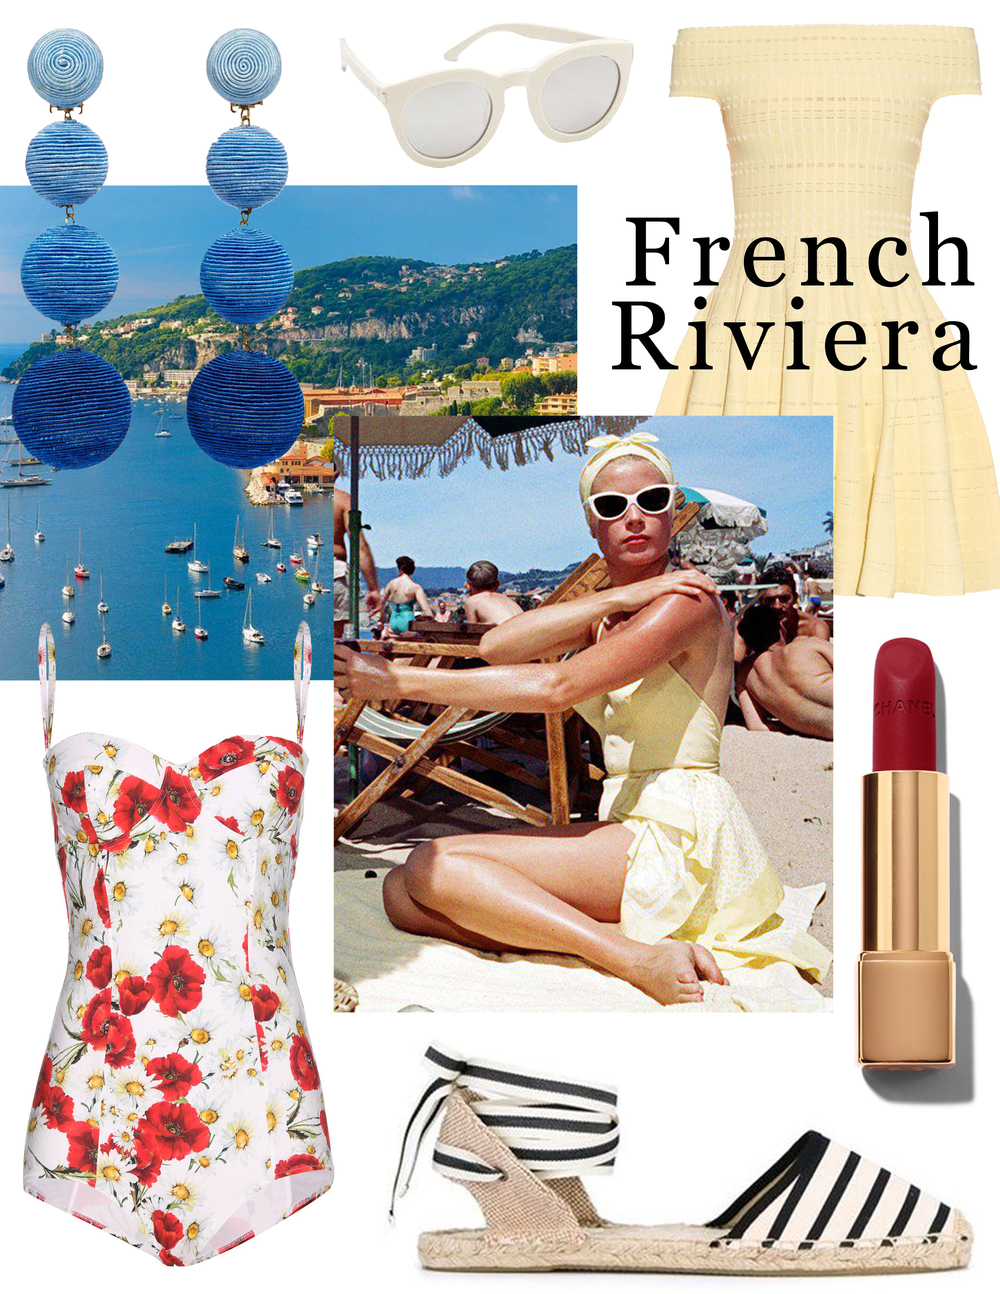 Packing inspiration: a lemondrop dress à la Grace Kelly (Alexander McQueen); white sunglasses (Saint Laurent); silk thread earrings (REBECCA DE RAVENEL); a retro silhouette swimsuit (Dolce & Gabbana); lace-up espadrilles (Soludos); a long-wear lipstick (Chanel).